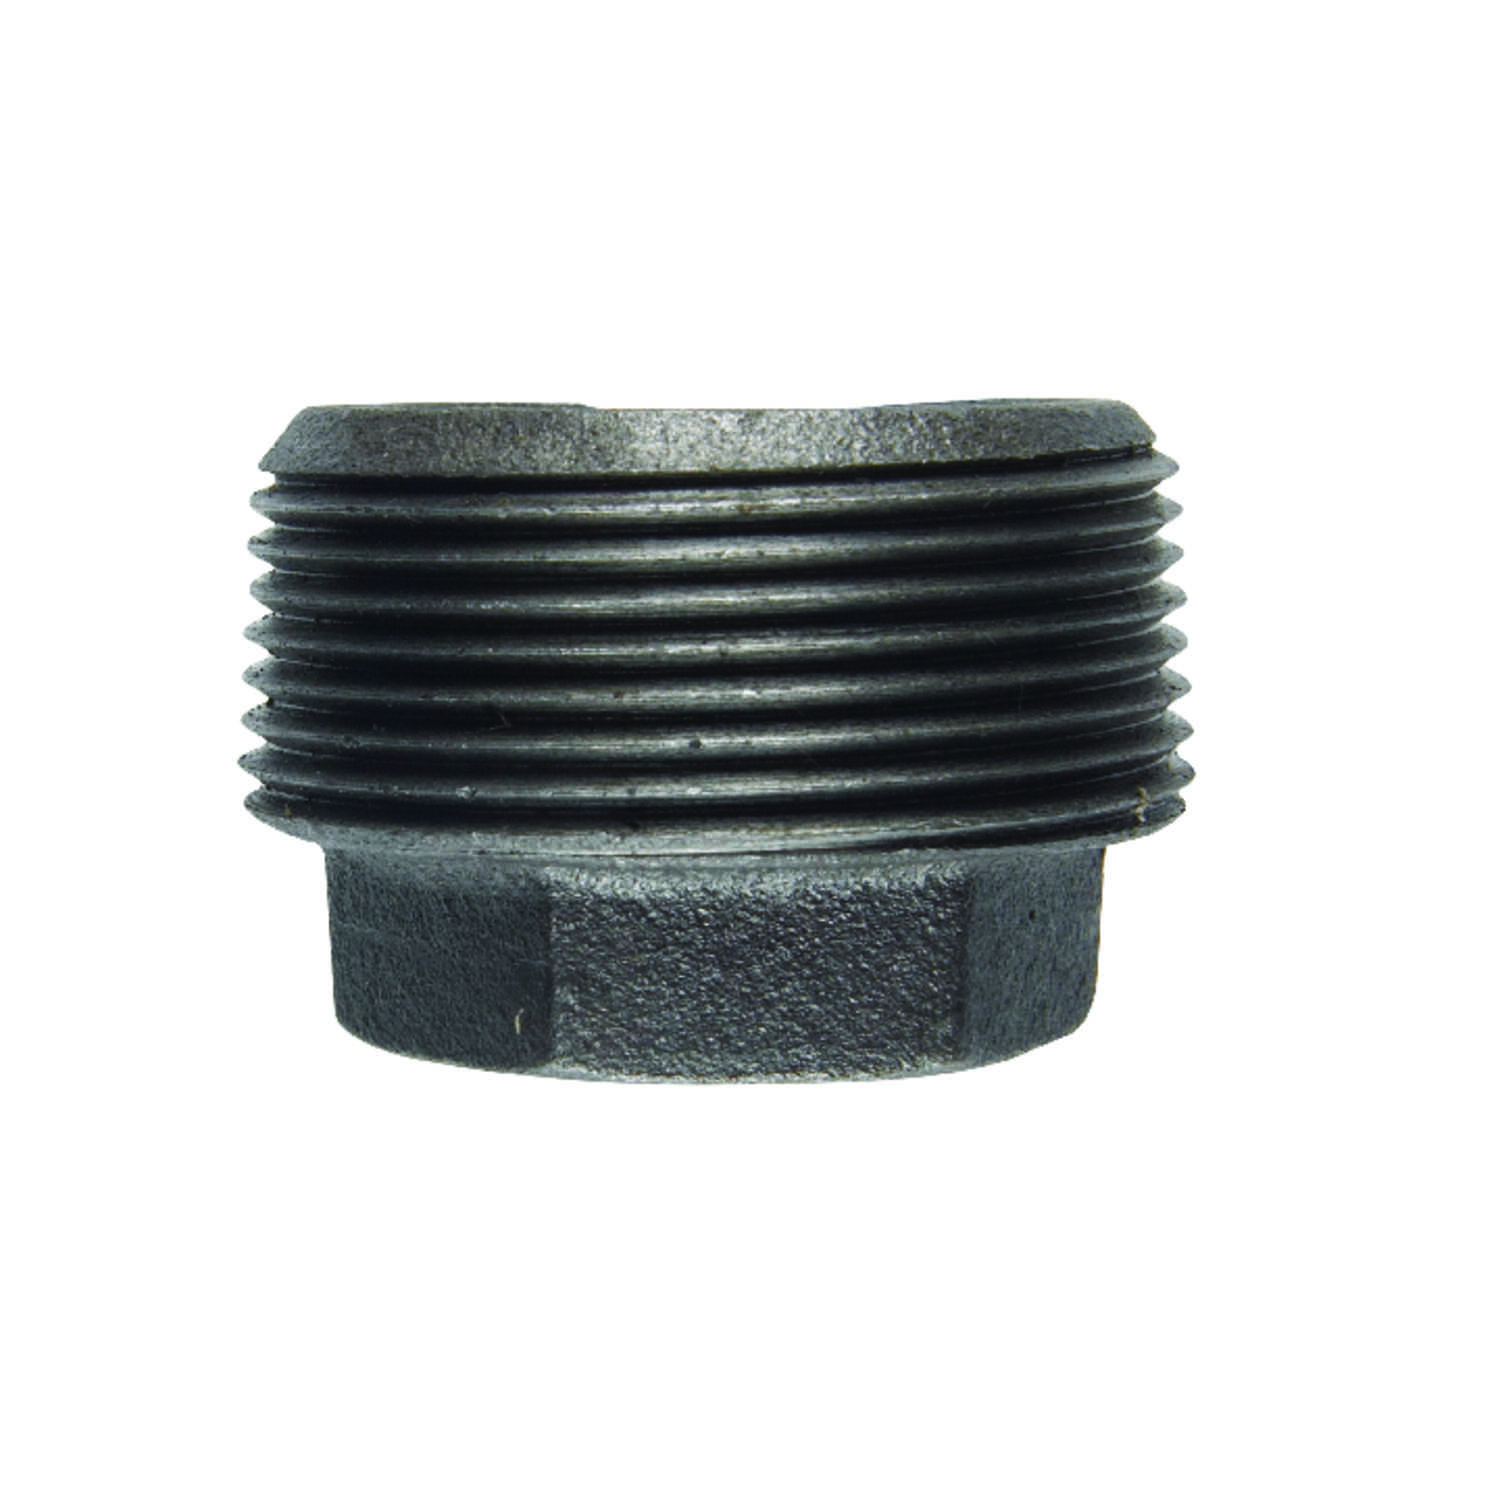 BK Products  1-1/4 in. MPT   x 1/2 in. Dia. FPT  Black  Malleable Iron  Hex Bushing